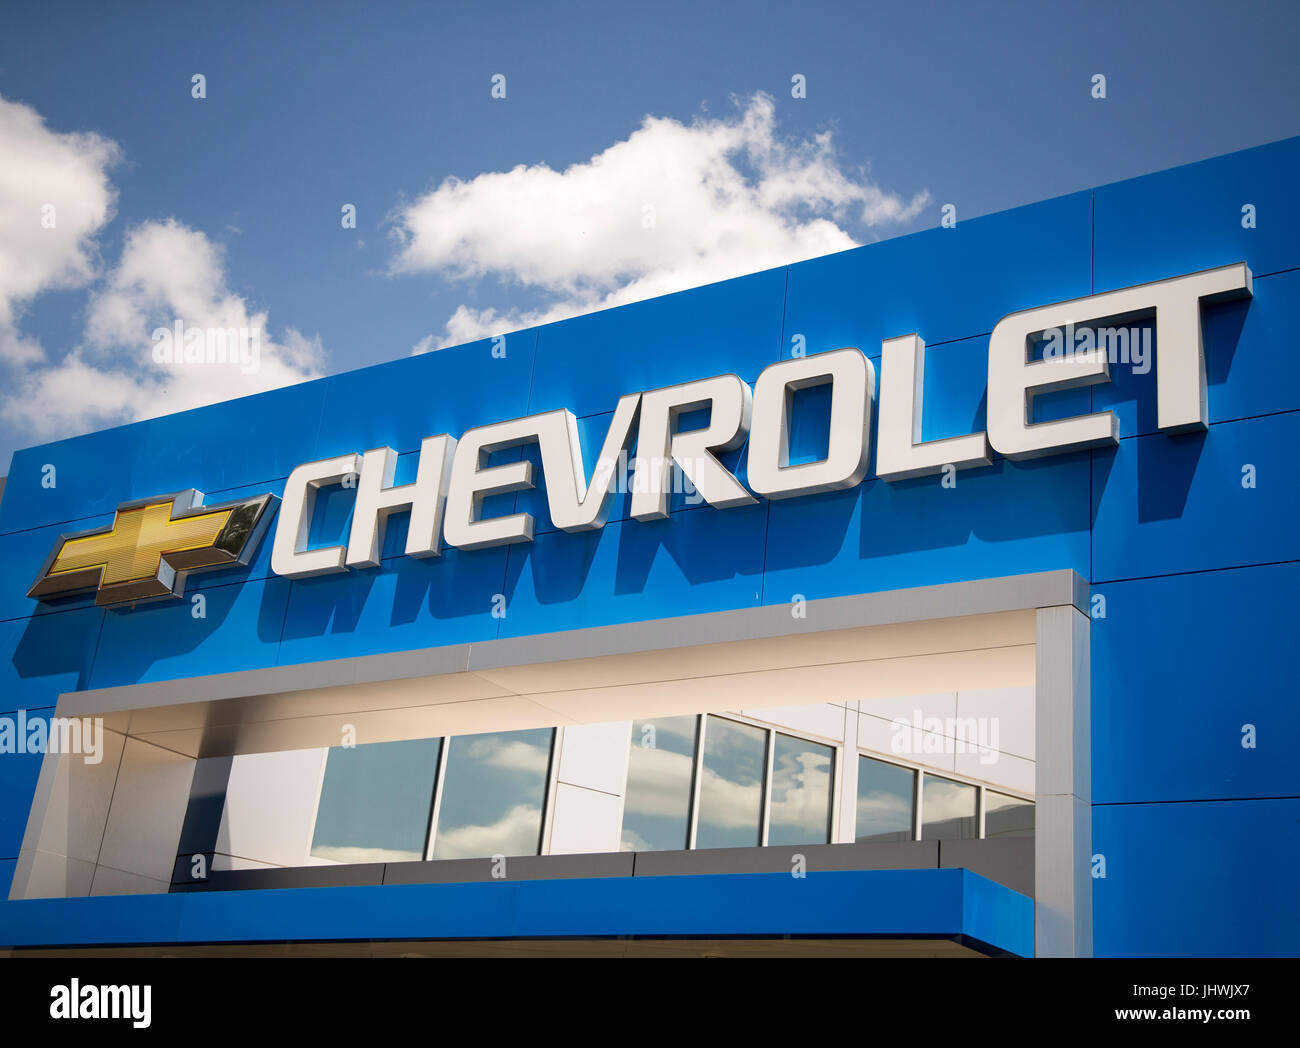 Sign Above A Chevrolet Dealership In New Jersey   Stock Image